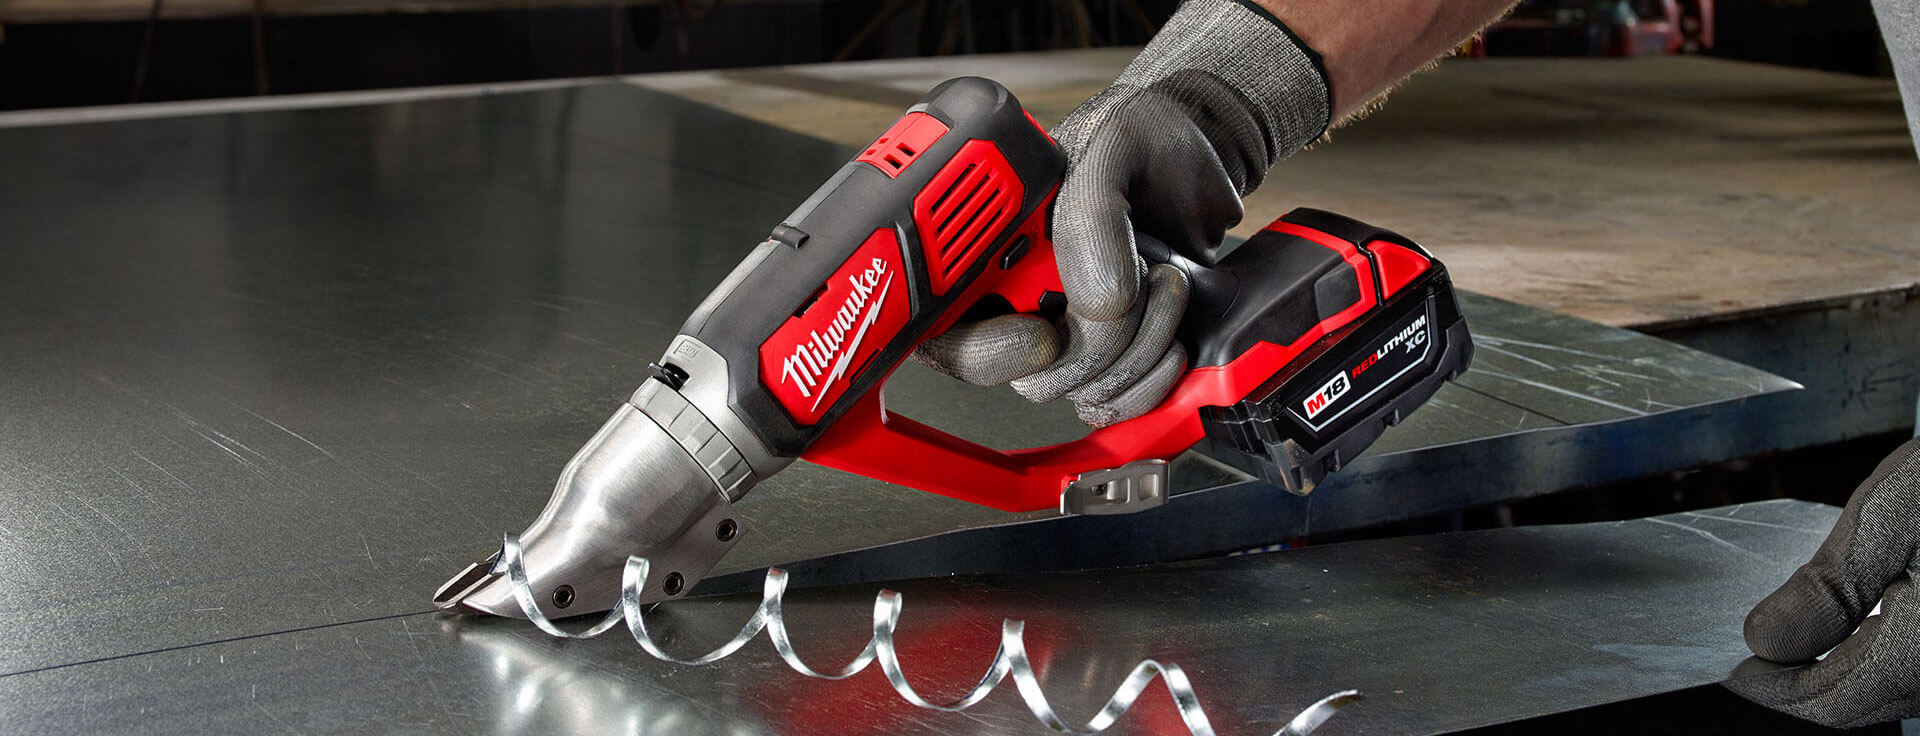 Heavy duty tools from Fasteners Inc. | Authorized Distributor of  Milwaukee Tool